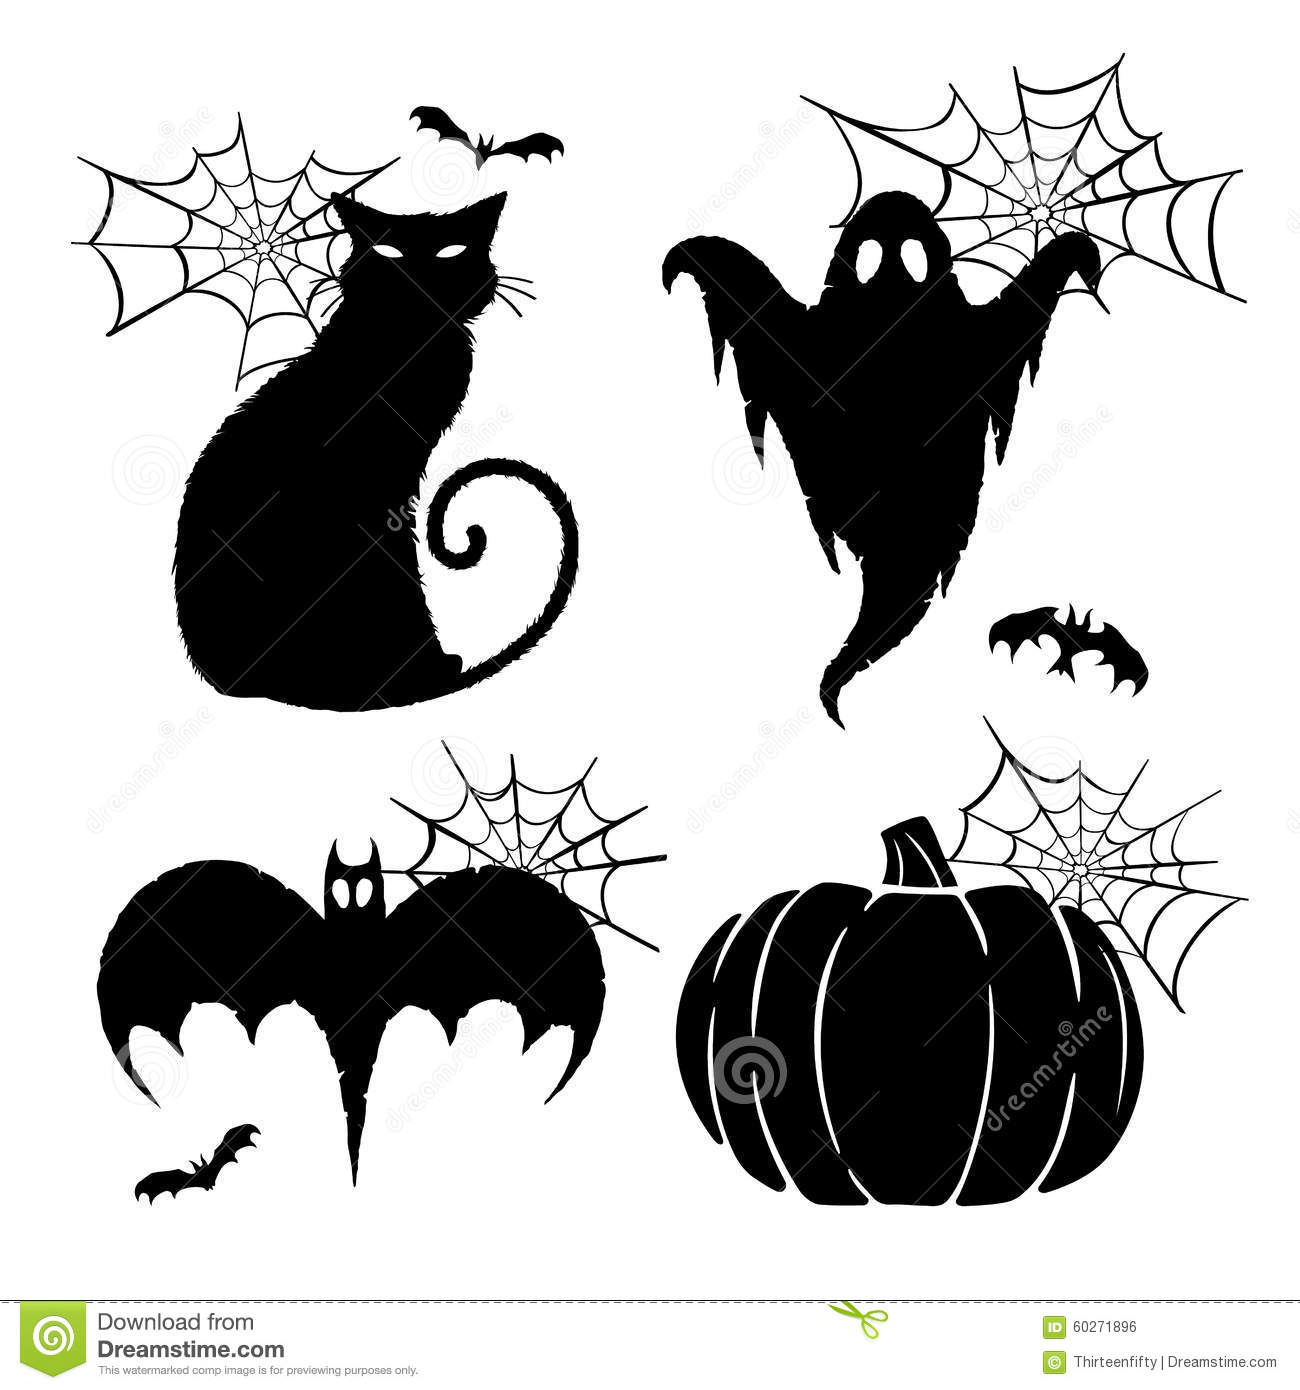 halloween-graphics -silhouetted-vector-ghost-black-cat-bat-pumpkin-60271896.jpg